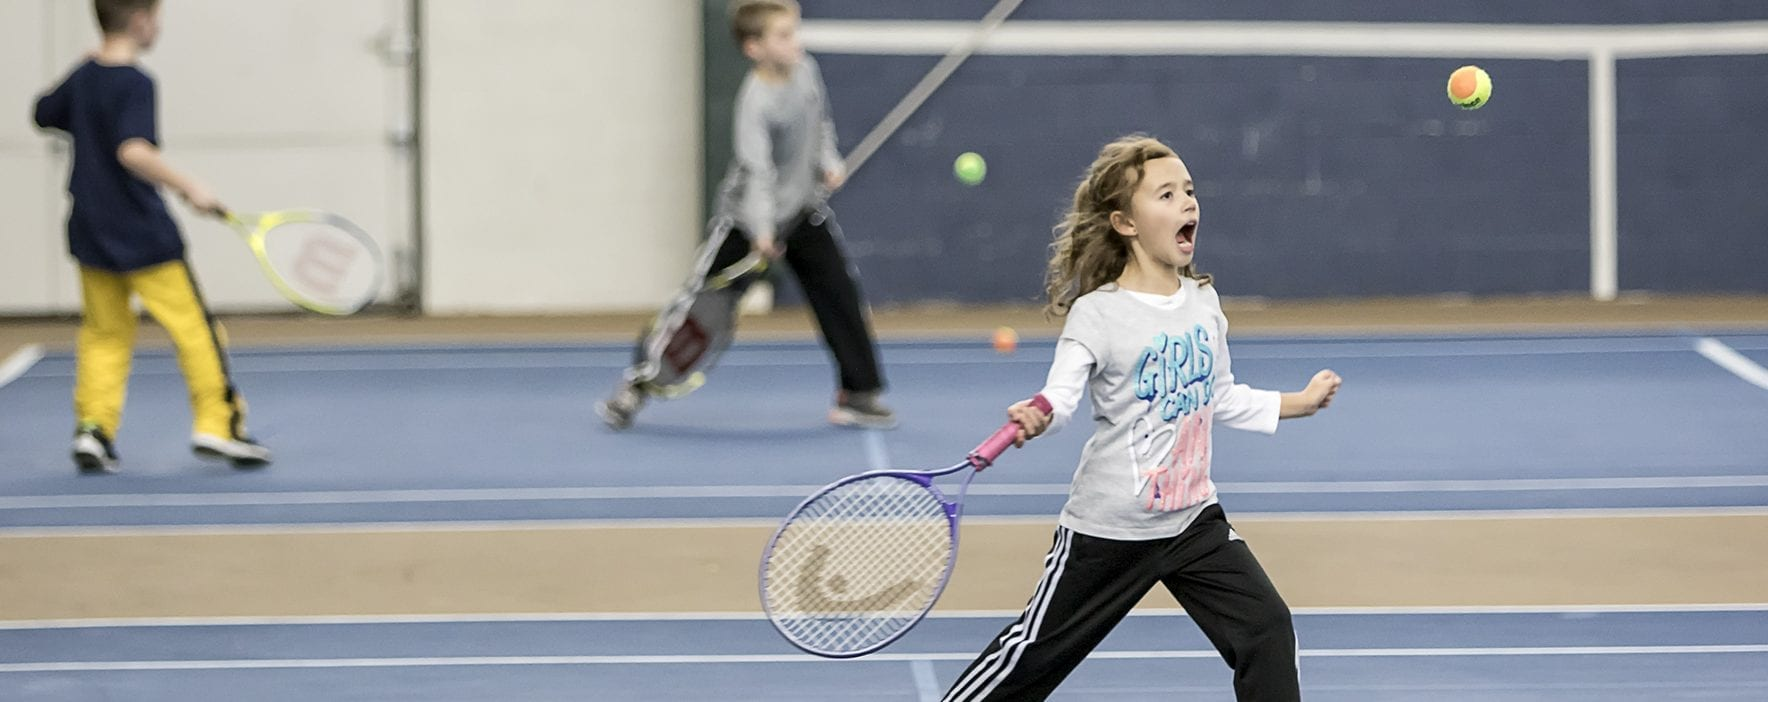 young girl hitting tennis ball